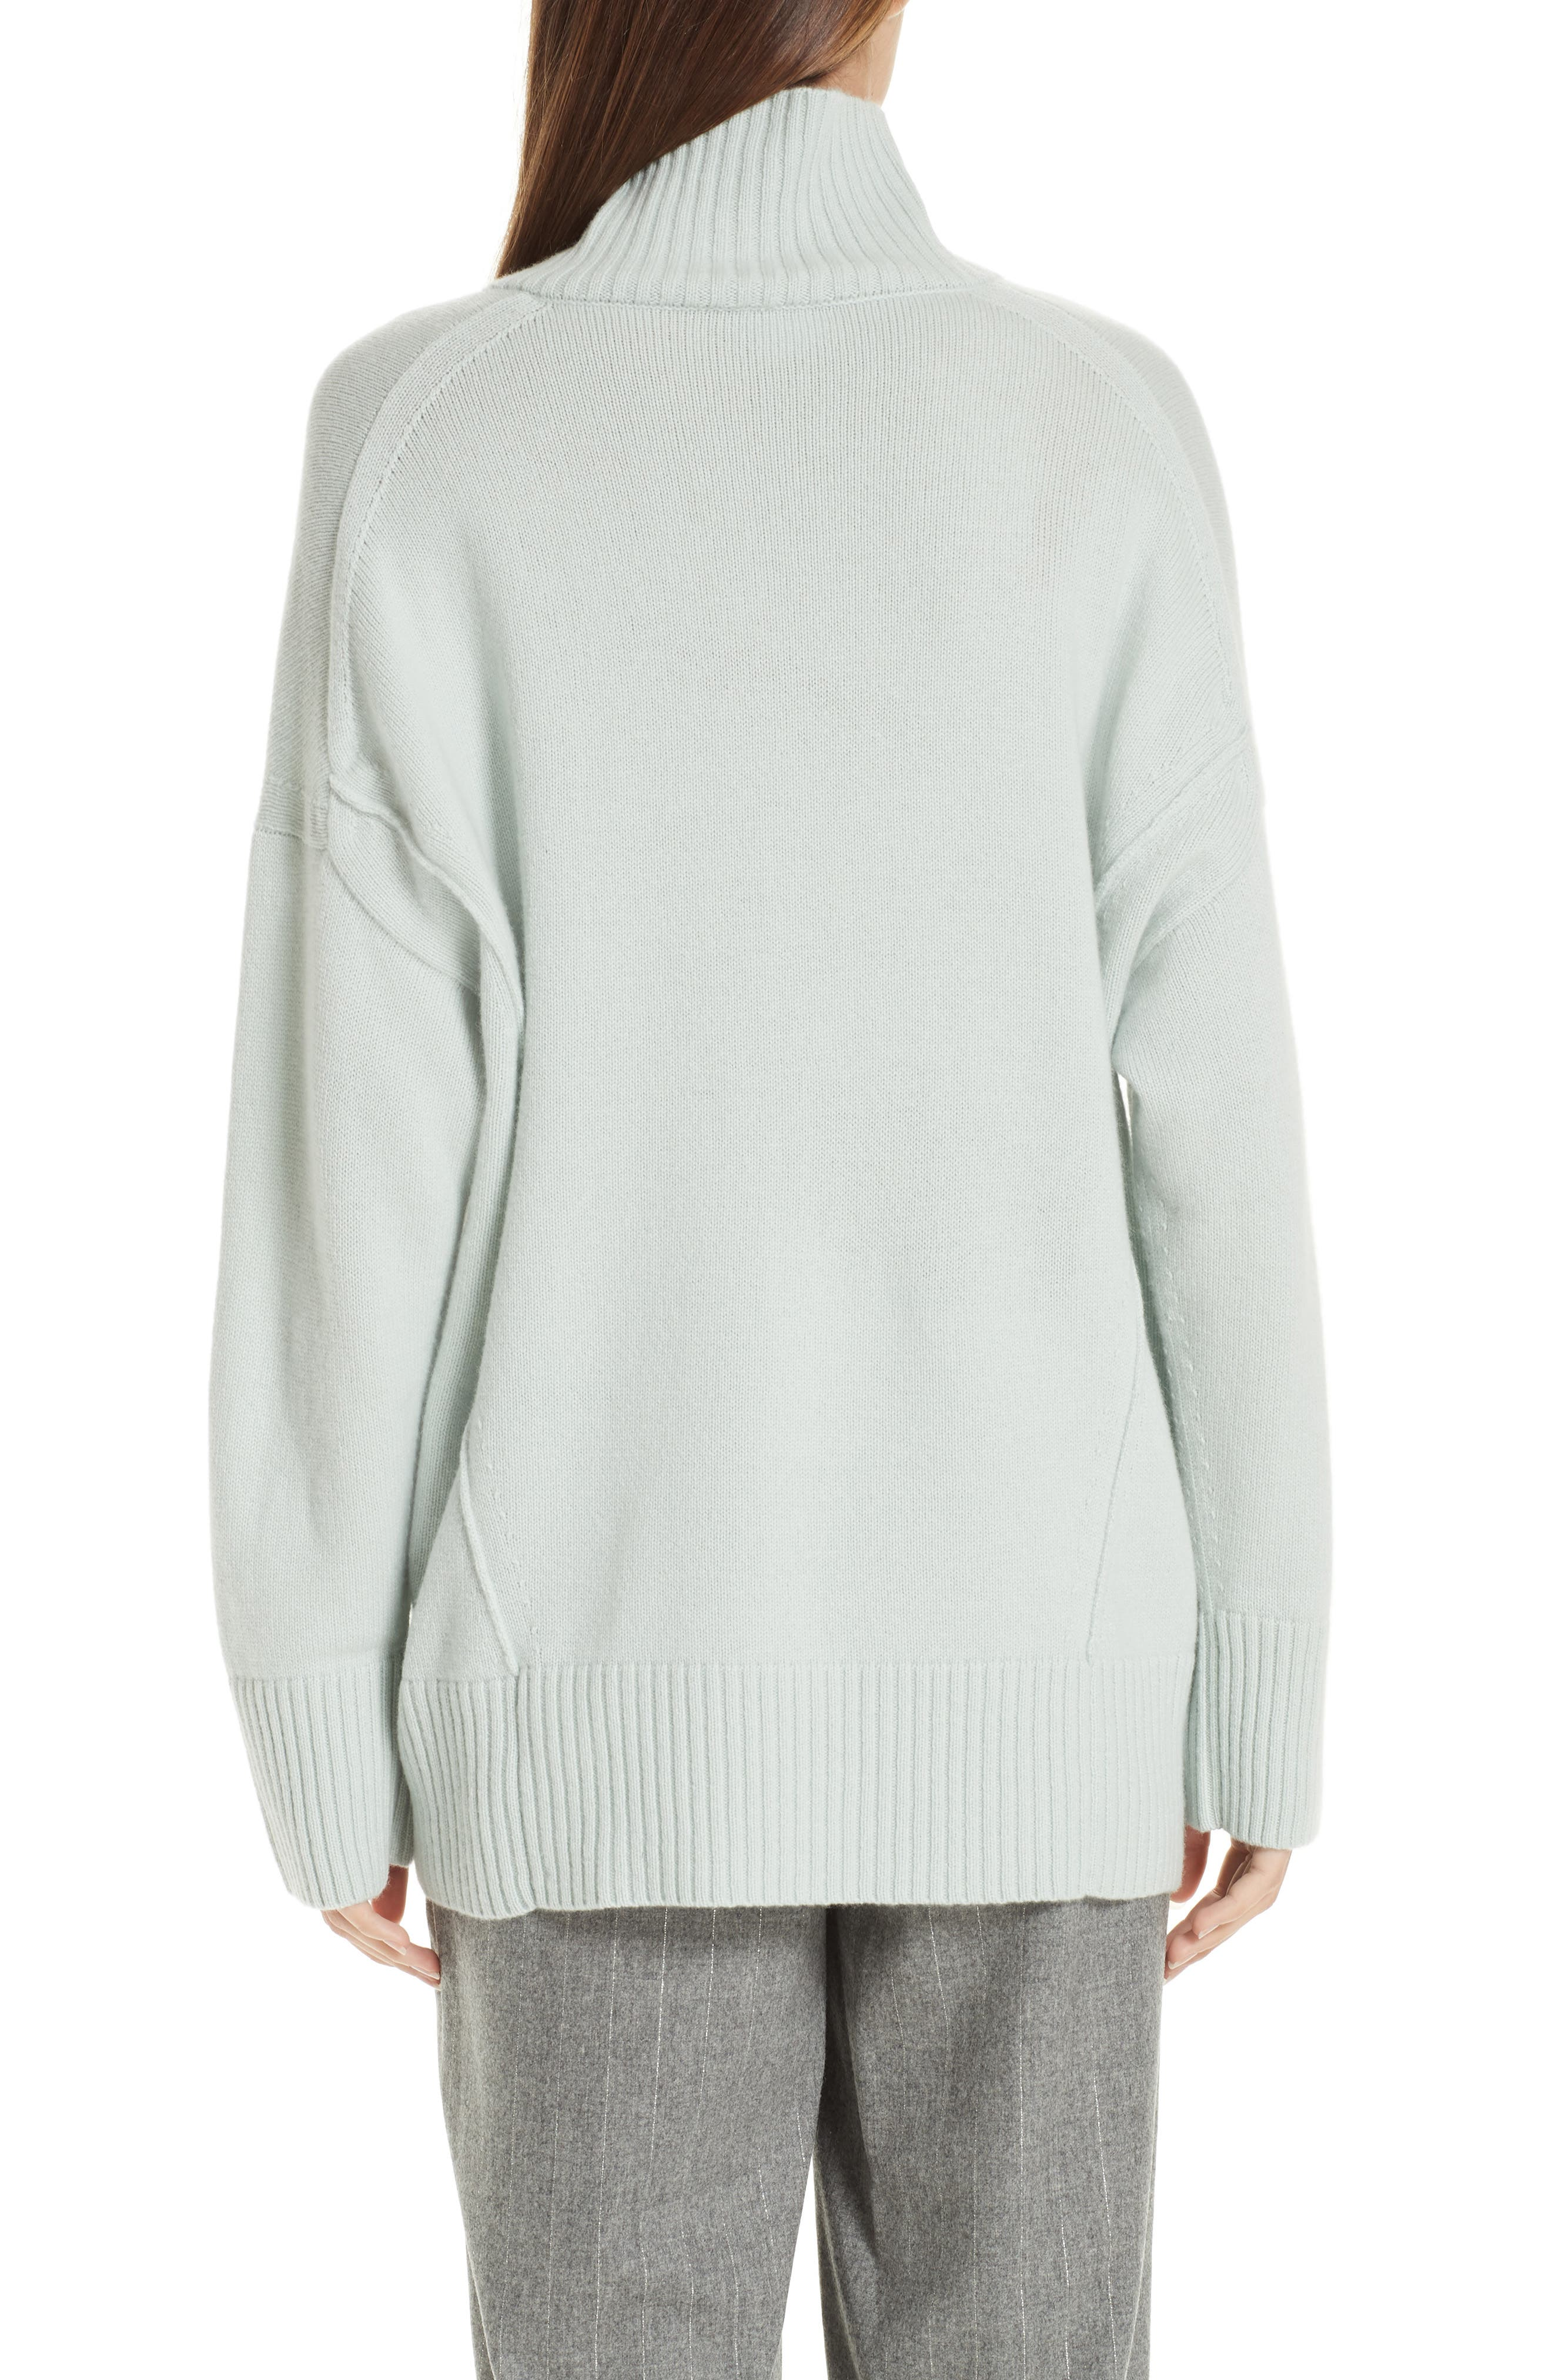 LAFAYETTE 148 NEW YORK,                             Relaxed Cashmere Turtleneck Sweater,                             Alternate thumbnail 2, color,                             400